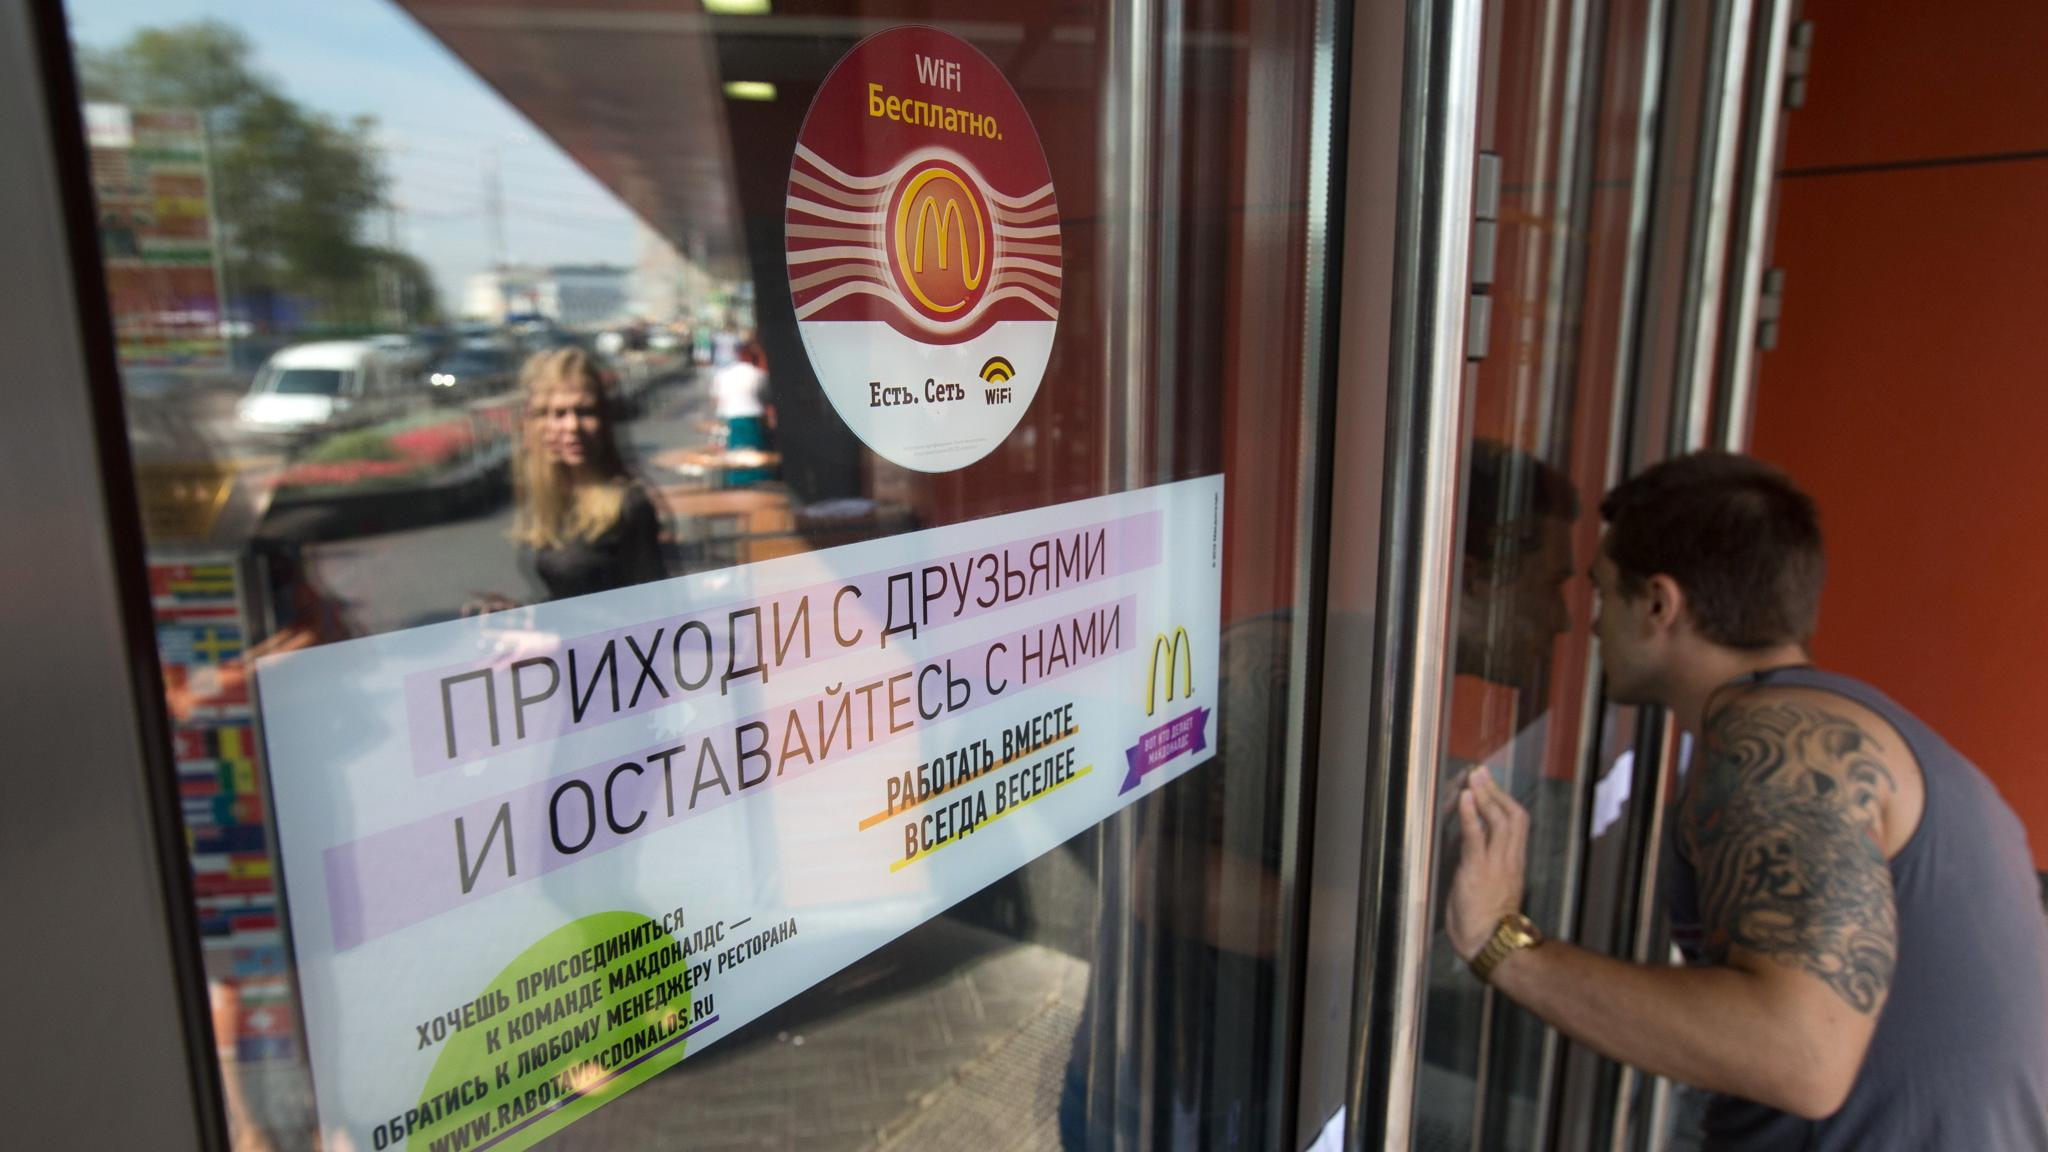 Does McDonalds really work in Crimea bypassing sanctions